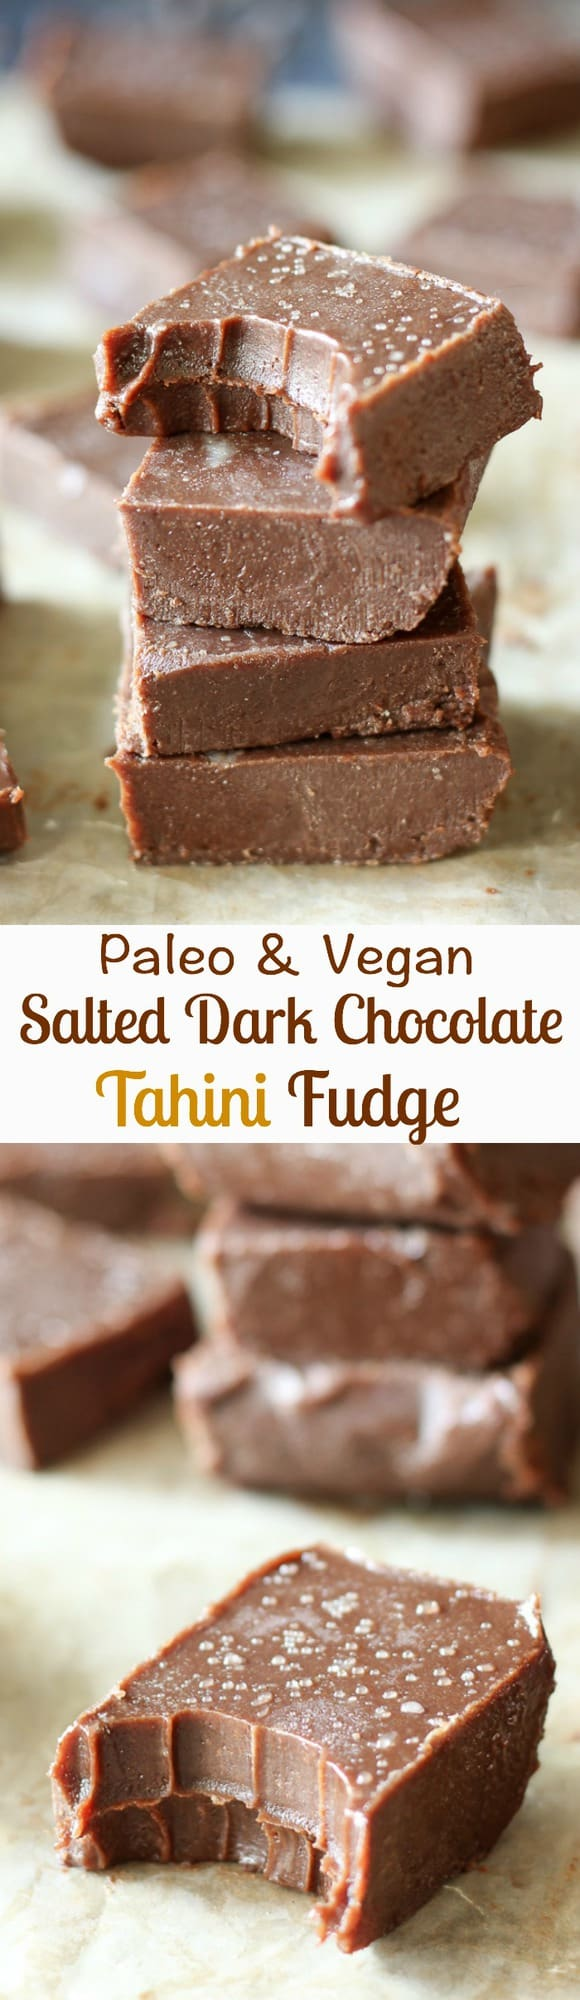 Paleo & Vegan salted dark chocolate tahini freezer fudge